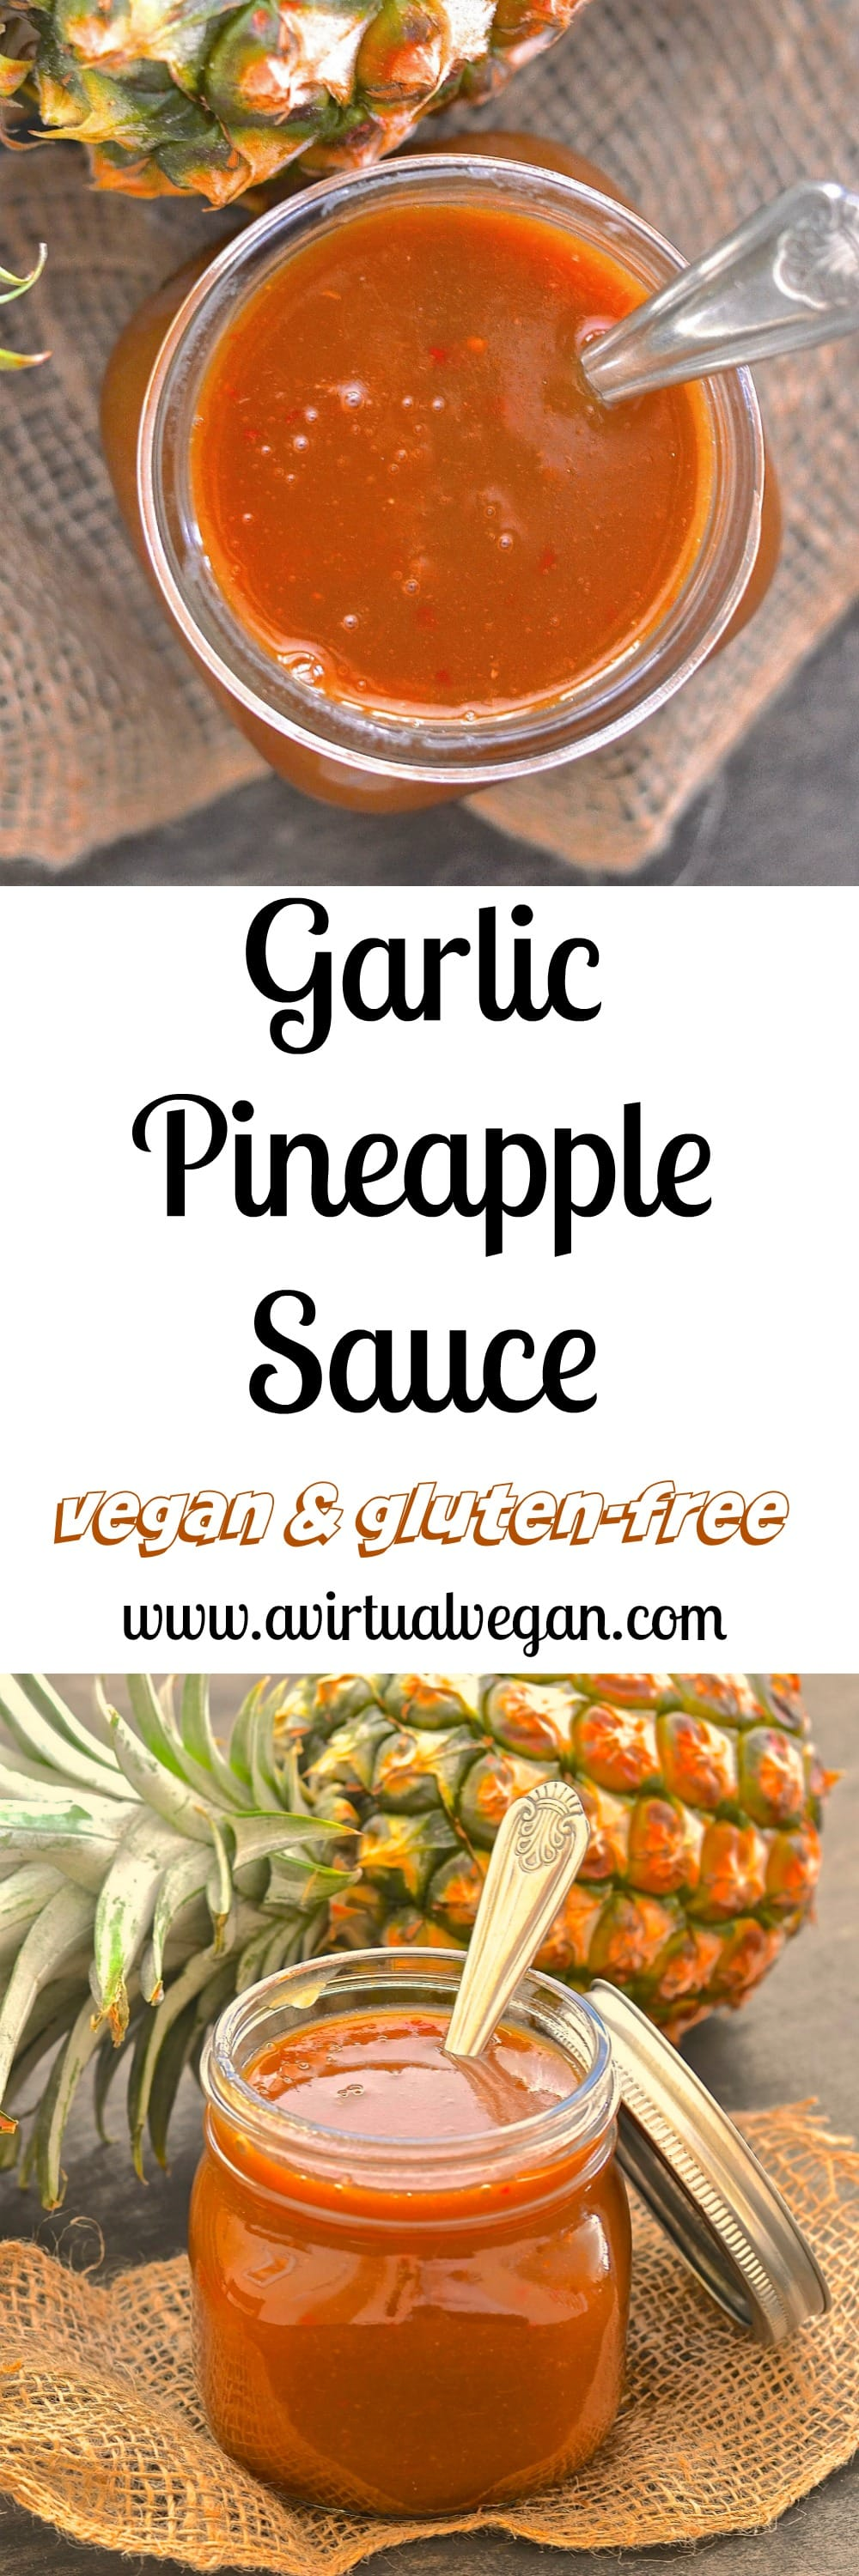 Get your coconut shell bikini & grass skirt ready because when you try this super tangy, sweet & spicy Garlic Pineapple Sauce you will want to dance around your kitchen in true Hawaiian style! Great in stir fries, as a marinade, on rice bowls or as a dipping sauce & ready in less than 10 mins!